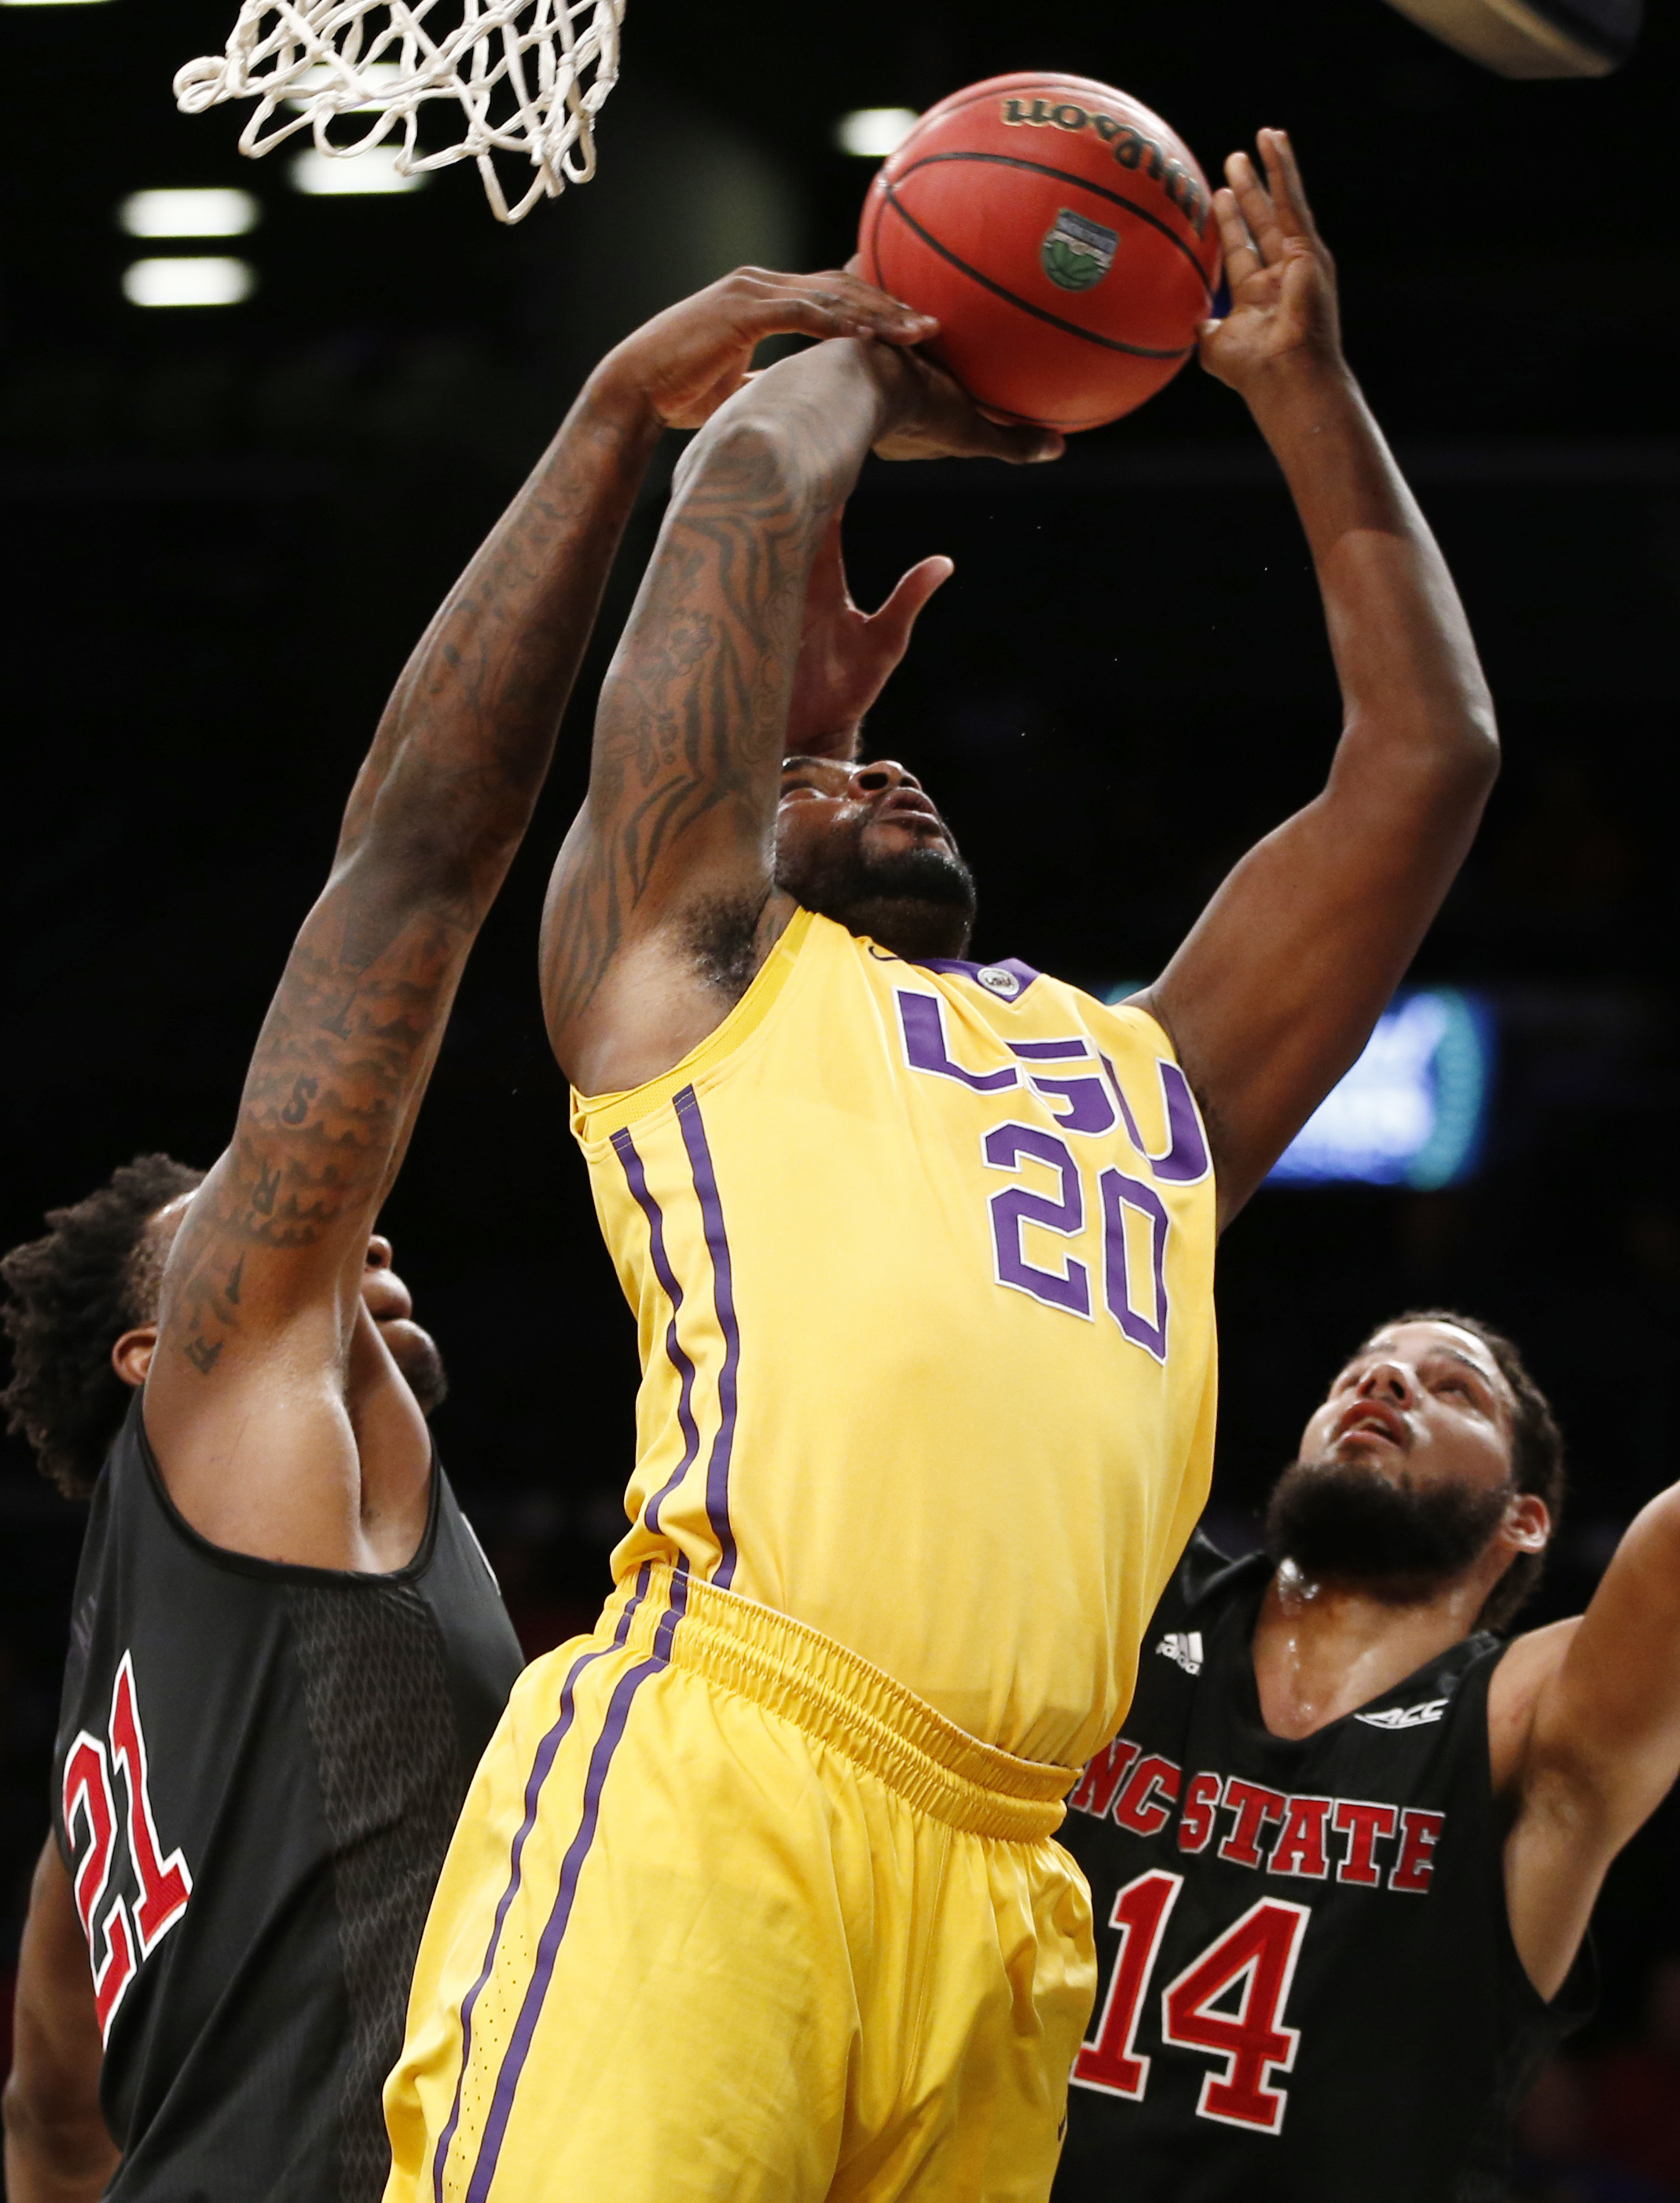 North Carolina State forward BeeJay Anya (21) and guard Caleb Martin (14) defend LSU forward Brian Bridgewater (20), who loses the ball during the first half of an NCAA college basketball game for third place in the Legends Classic, Tuesday, Nov. 24, 2015